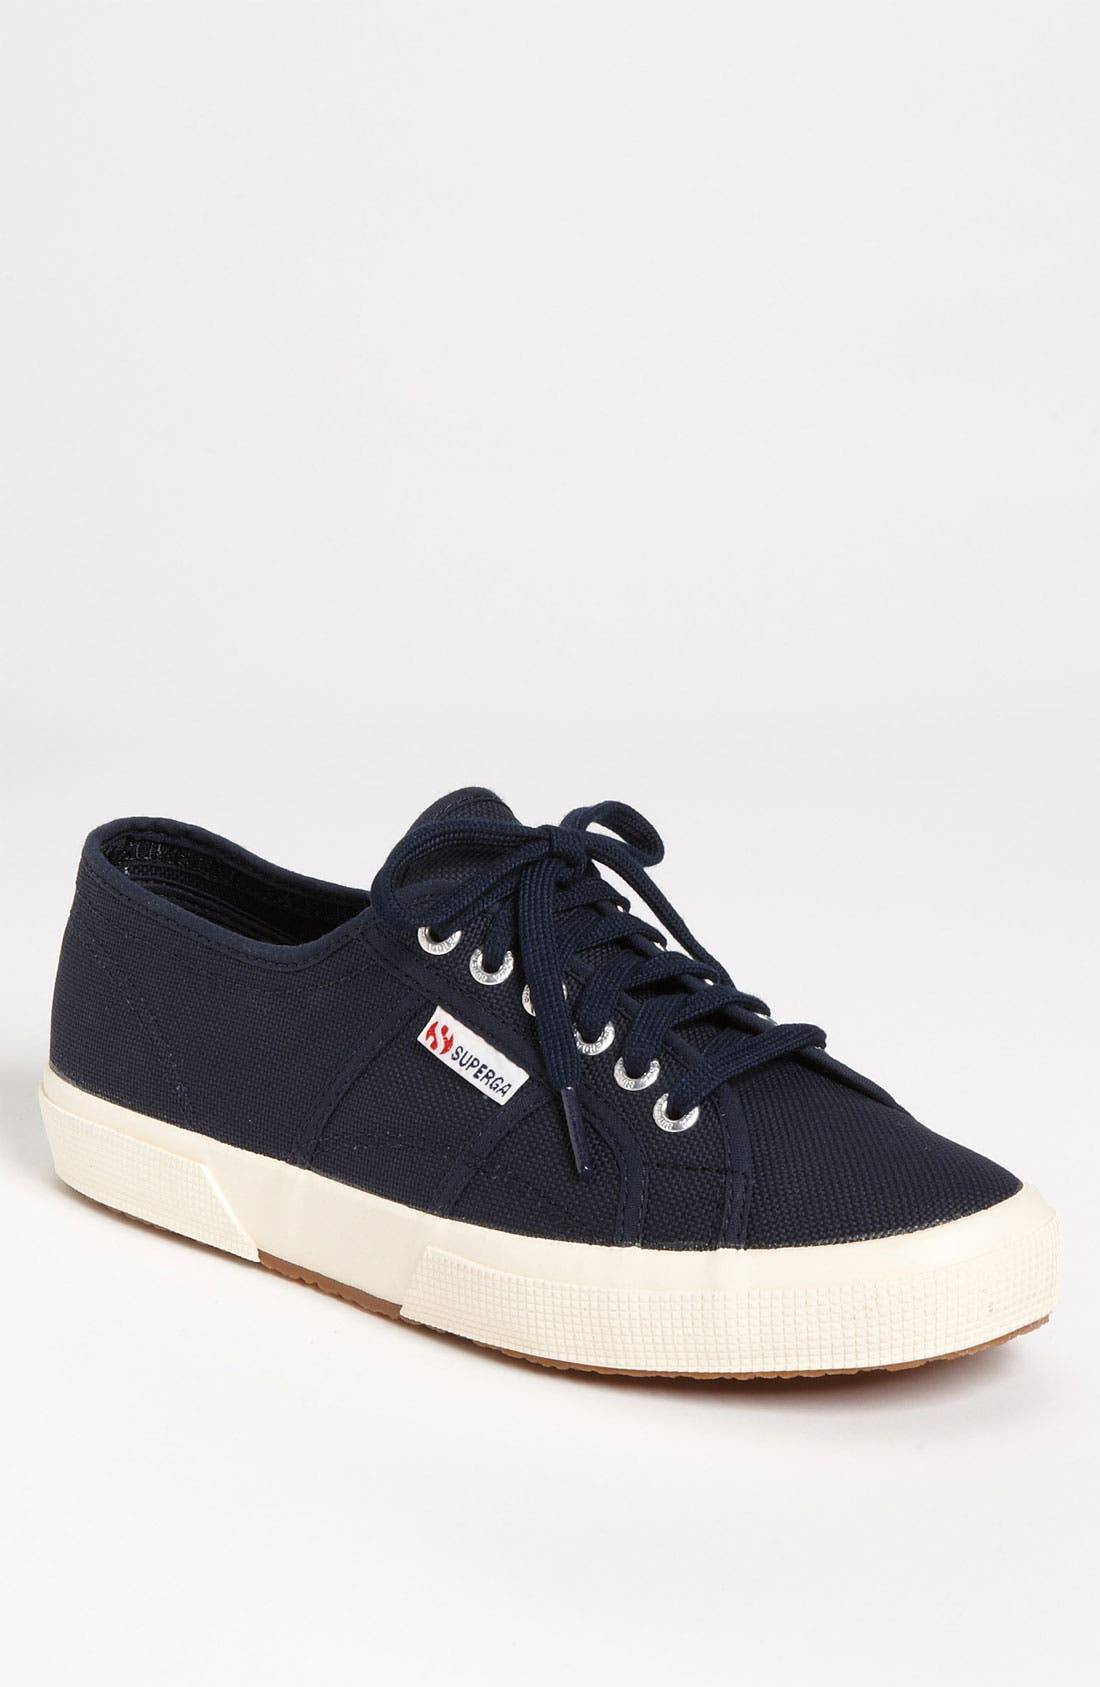 Alternate Image 1 Selected - Superga 'Cotu' Sneaker (Men)